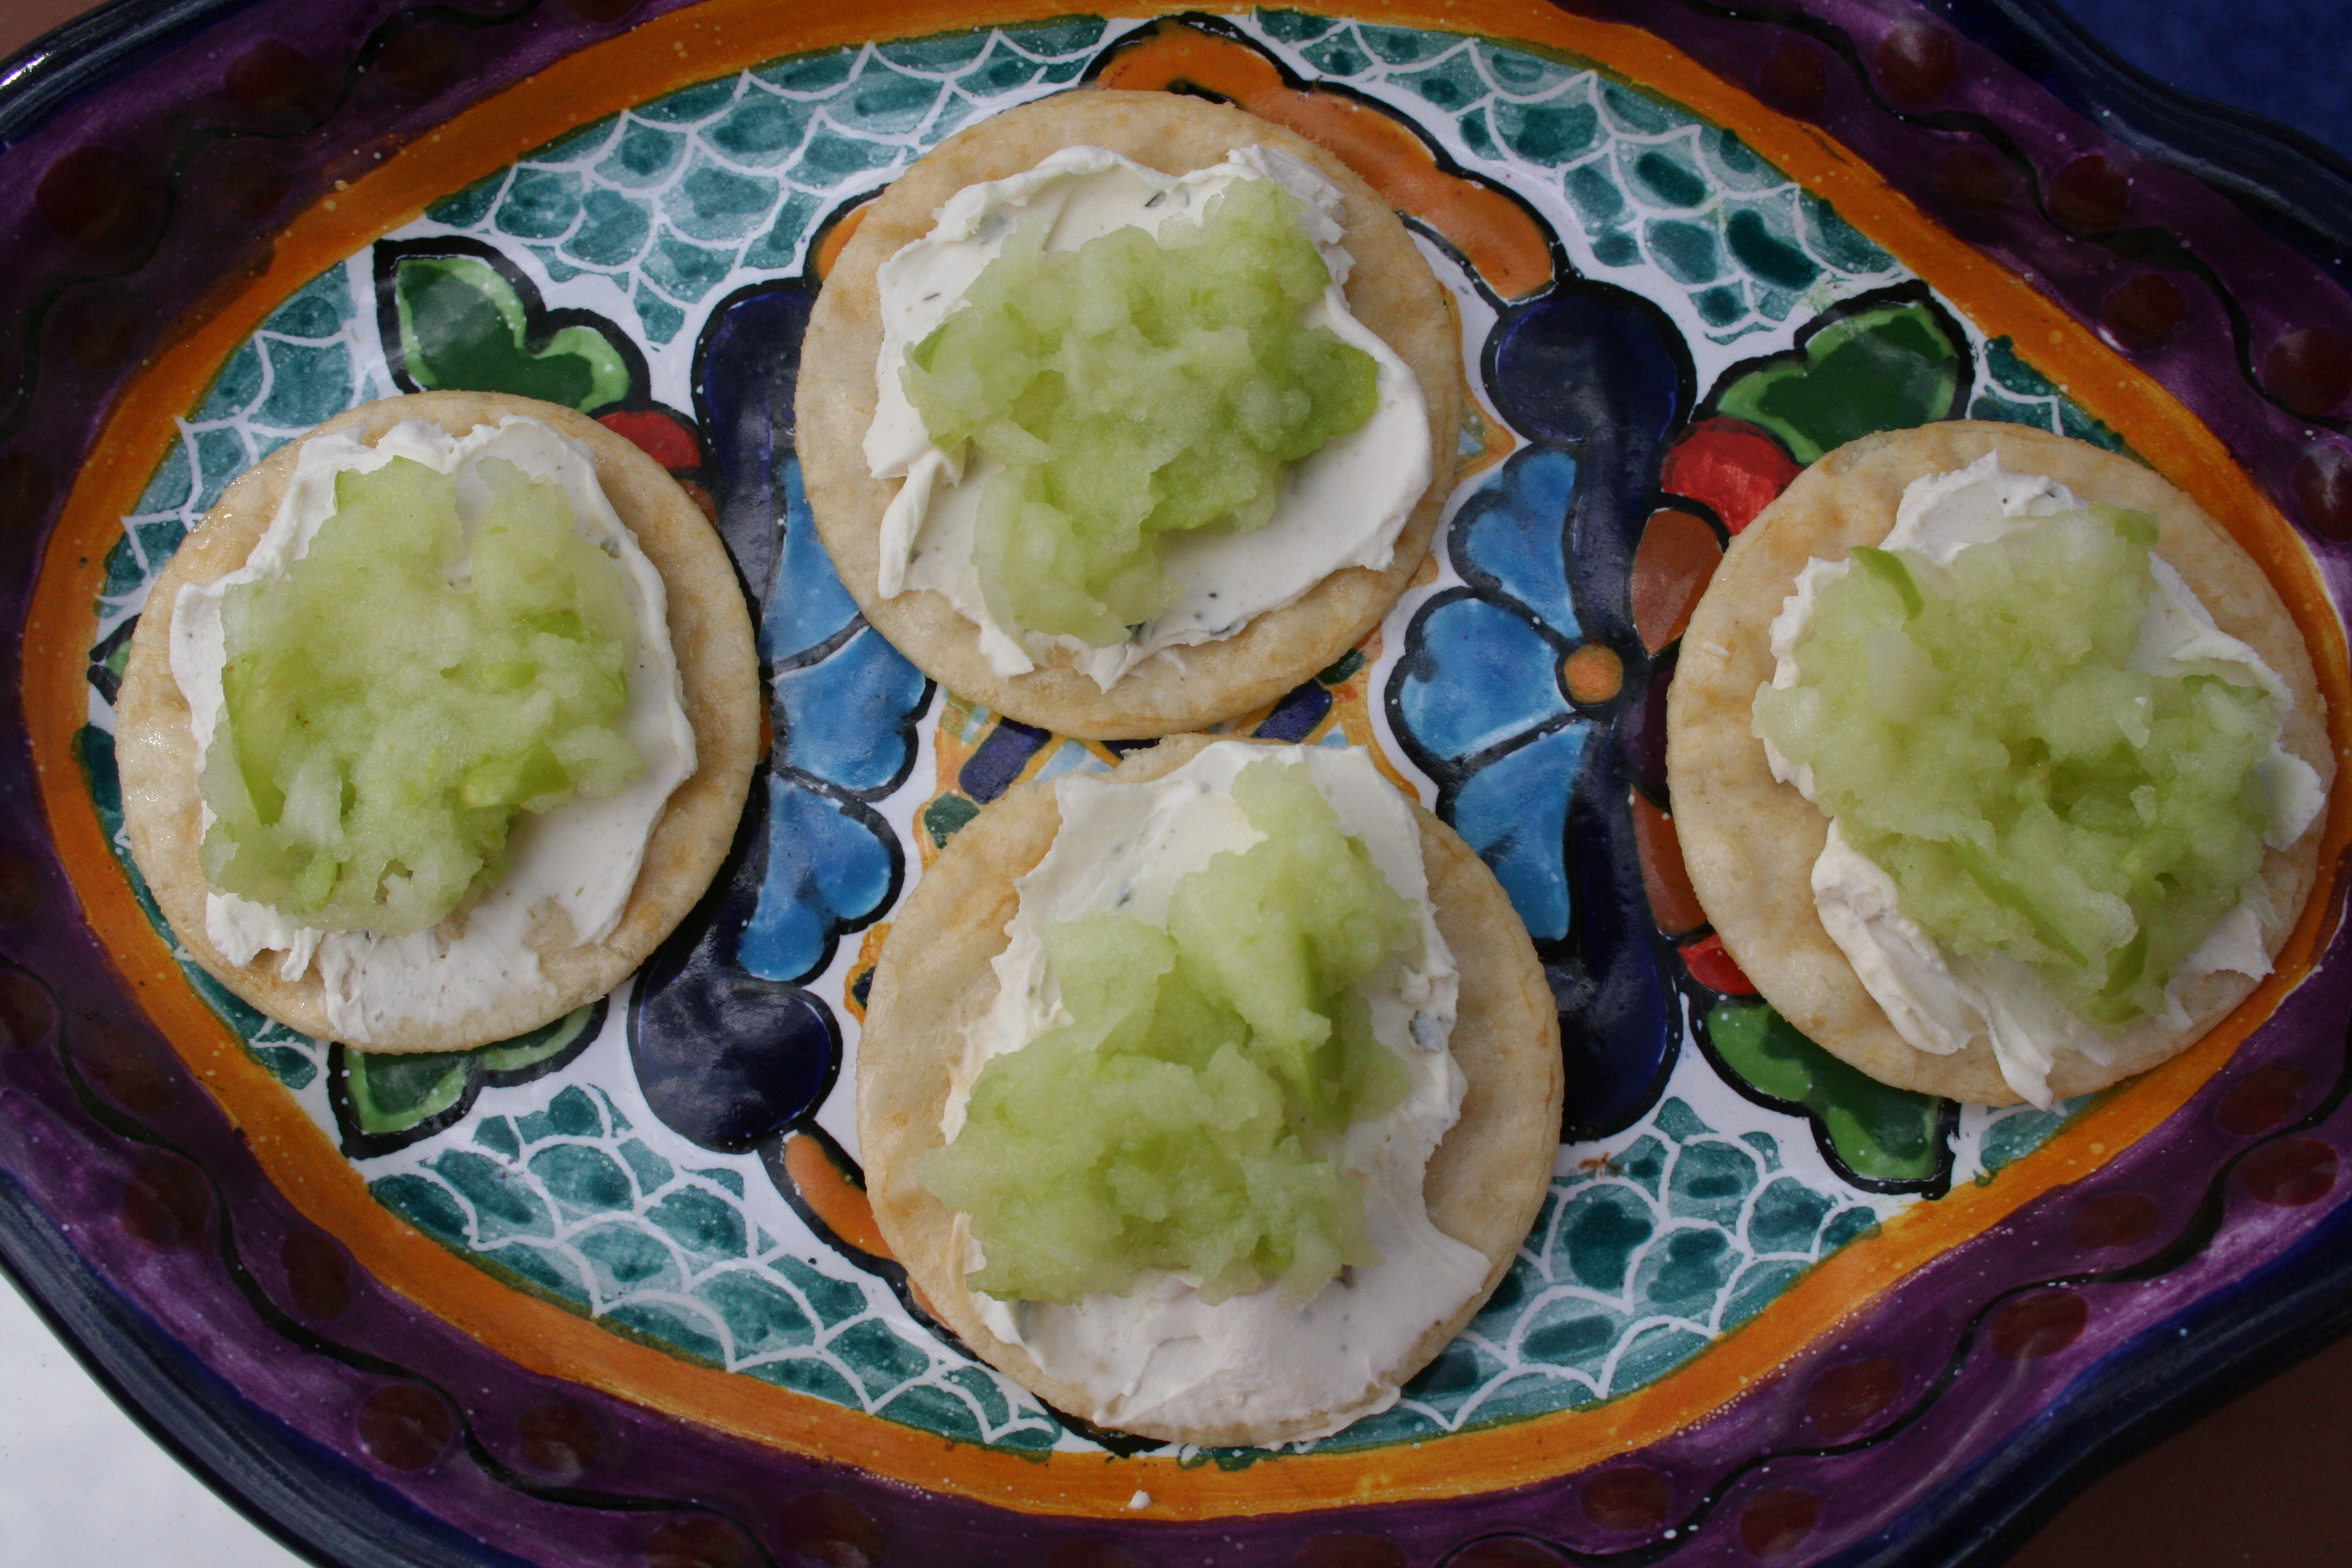 Wasabi Crackers with Tofutti and Applesauce